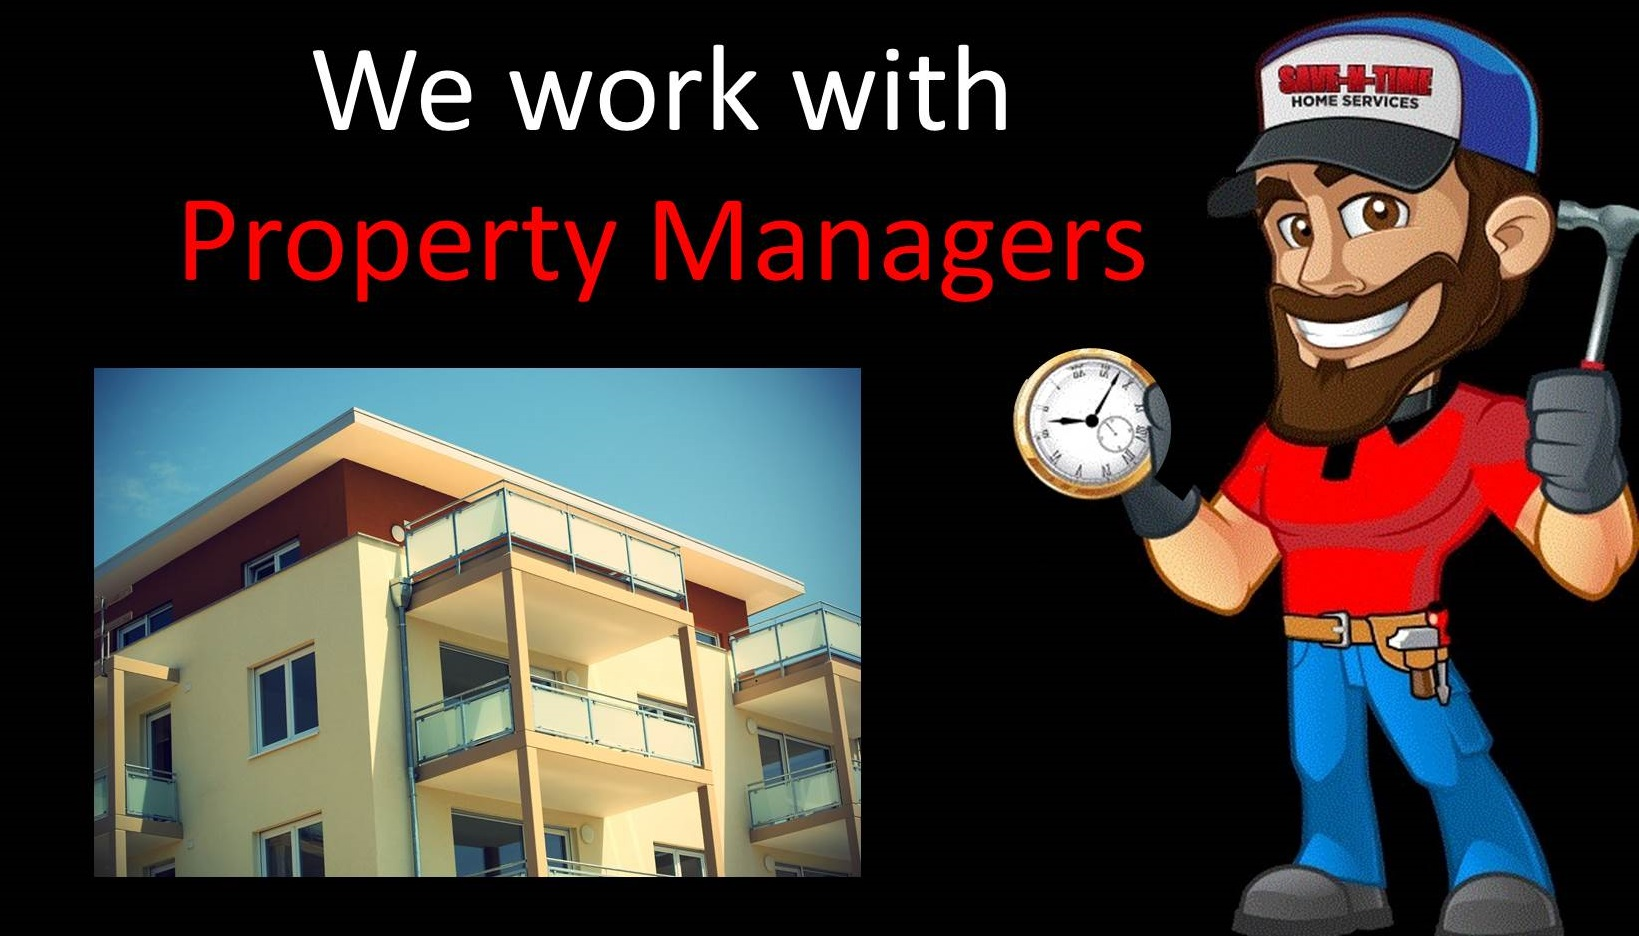 We work with Property Managers